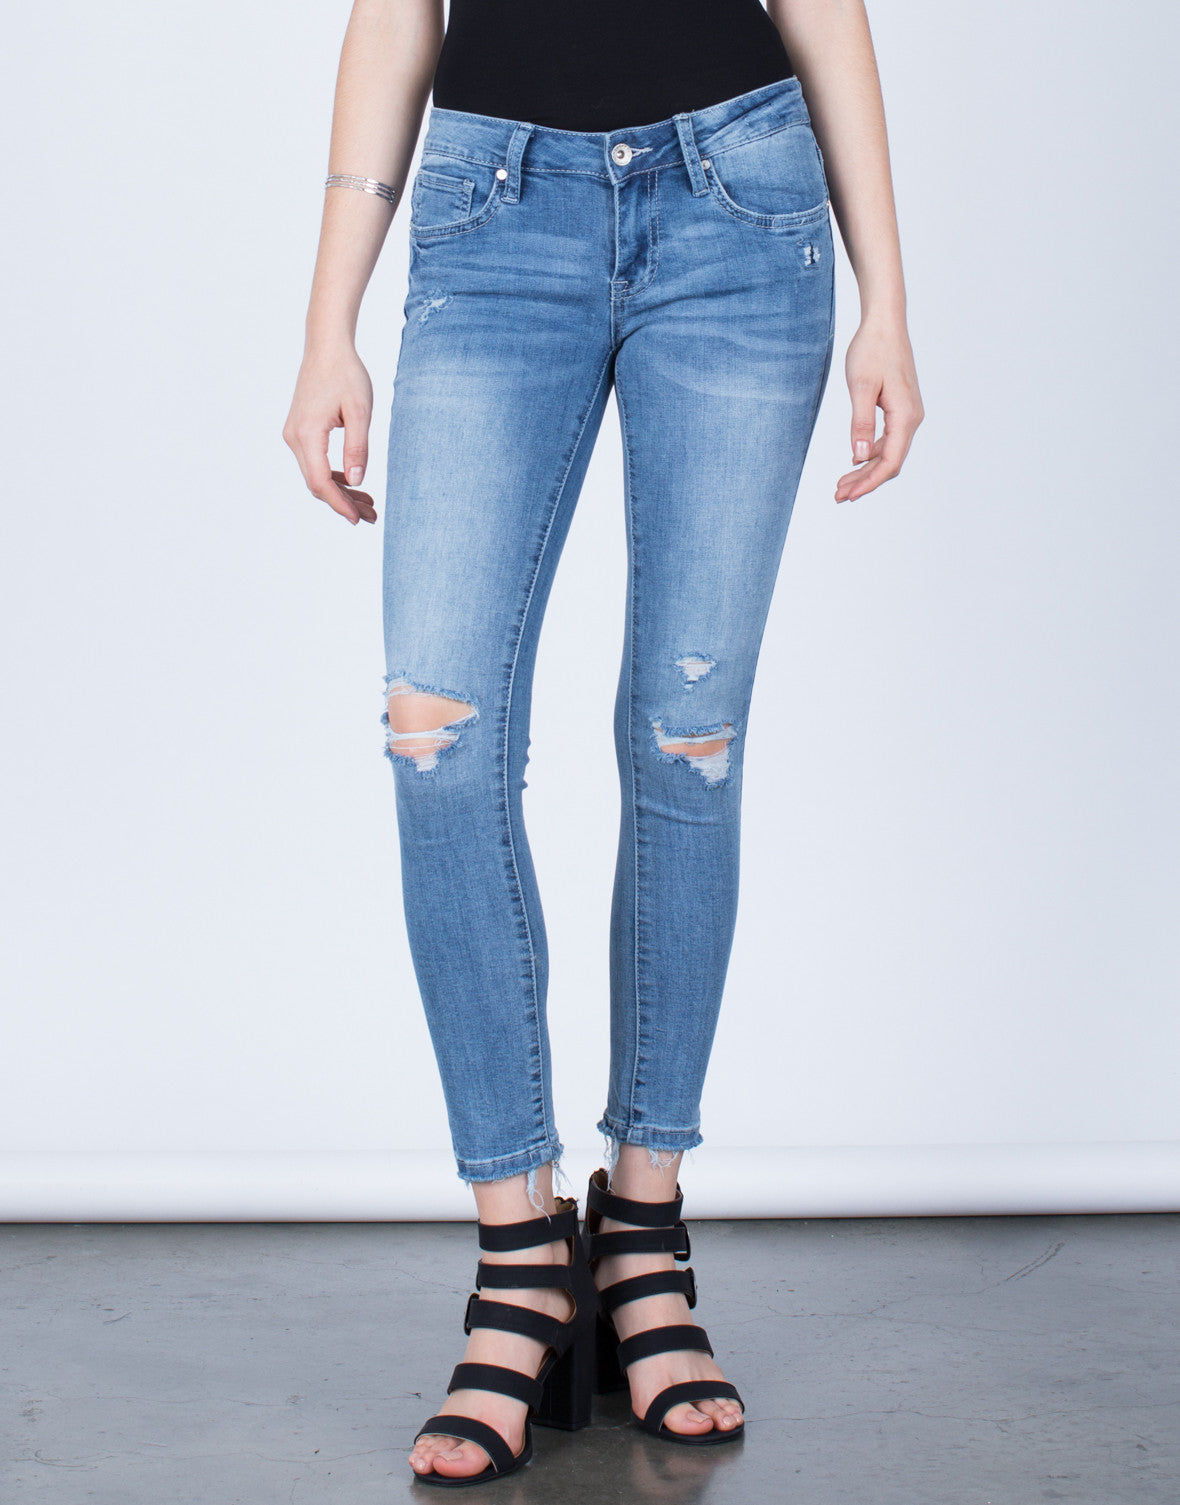 Stretchy Distressed Jeans